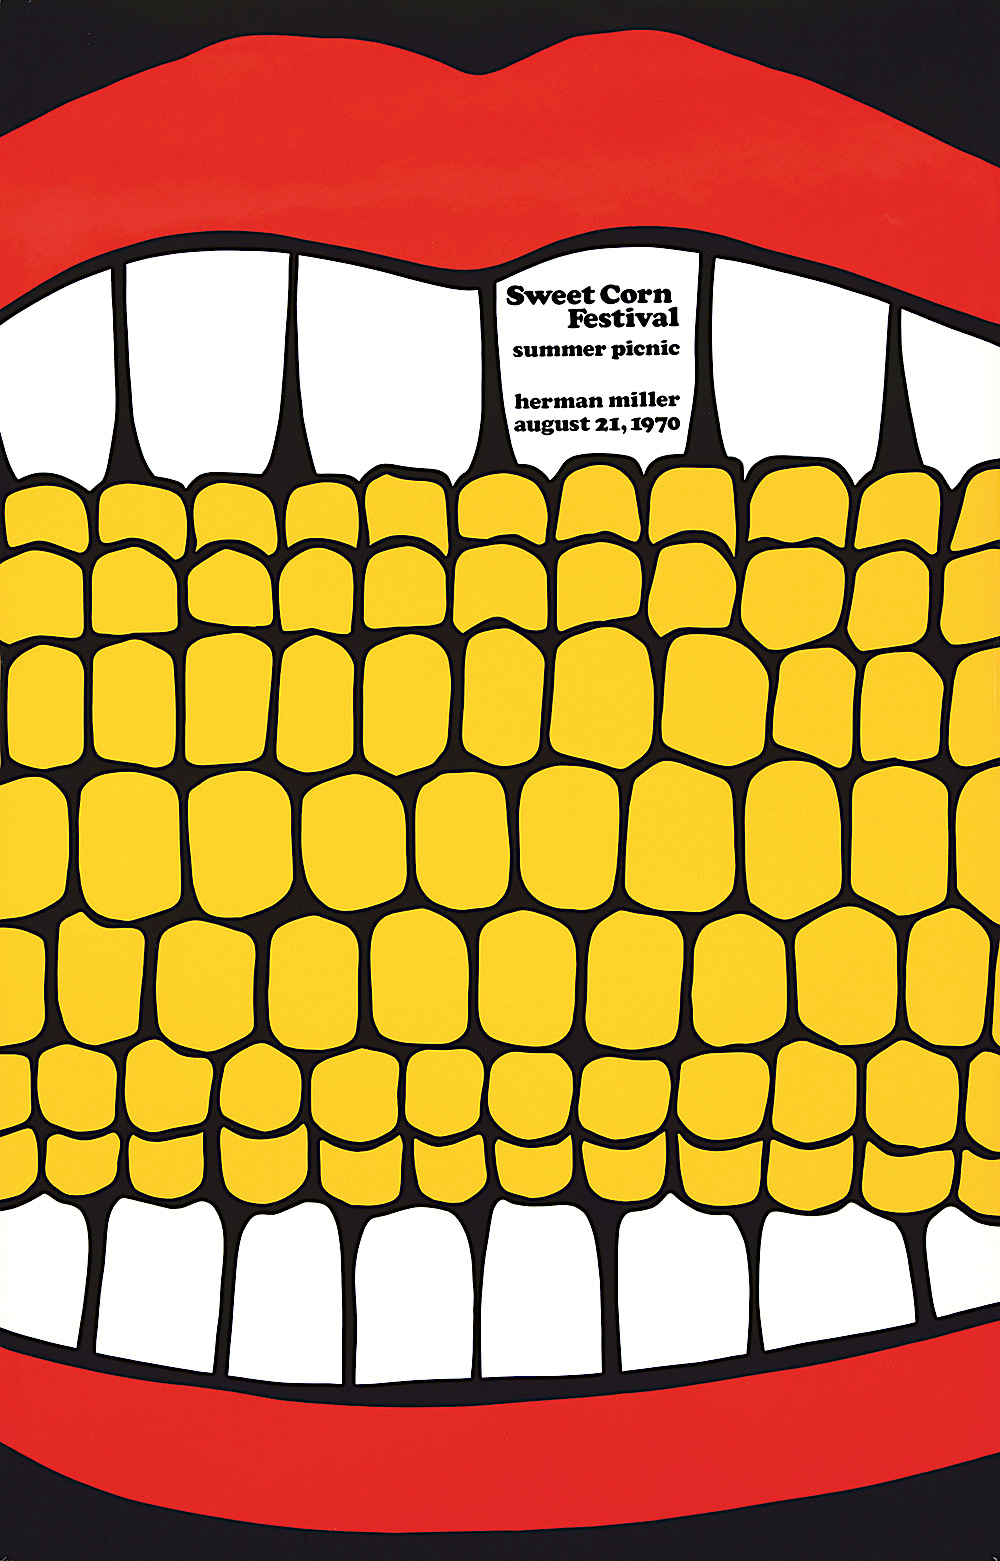 Sweet Corn Festival poster 1970, a giant mouth eating corn in color